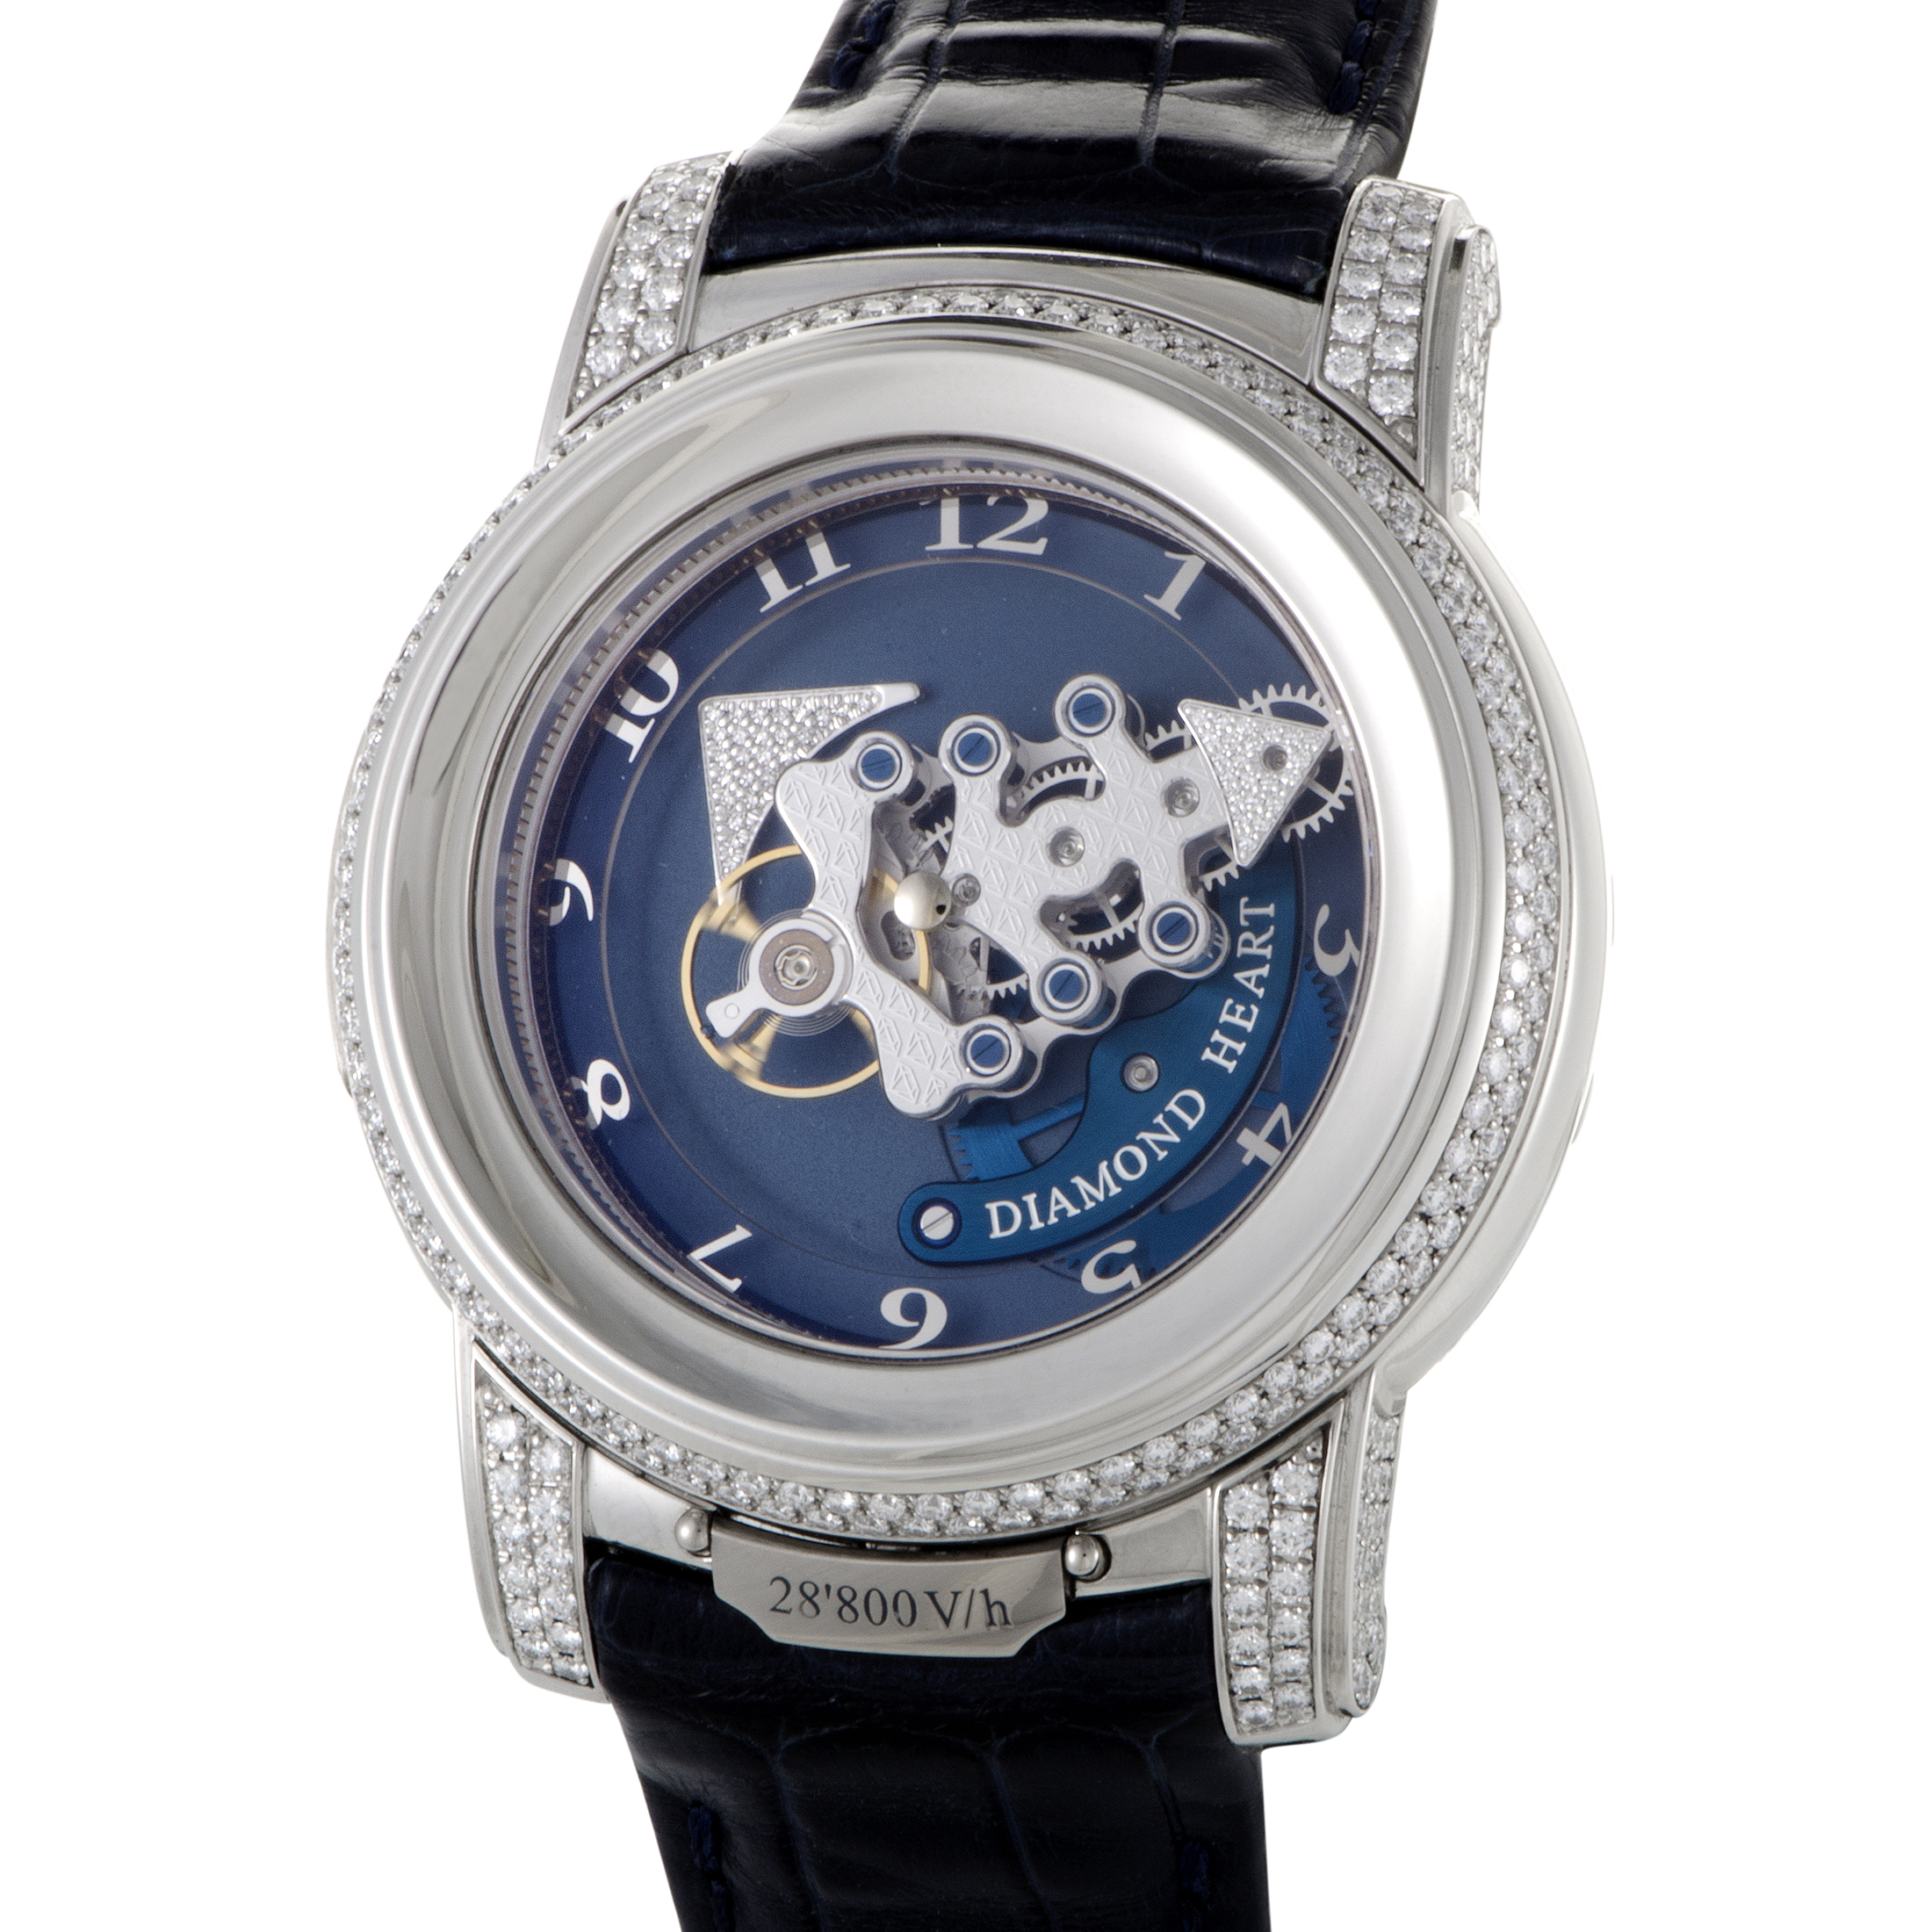 replica Ulysse Nardin Freak 28800 Vh Diamond Heart 029-80